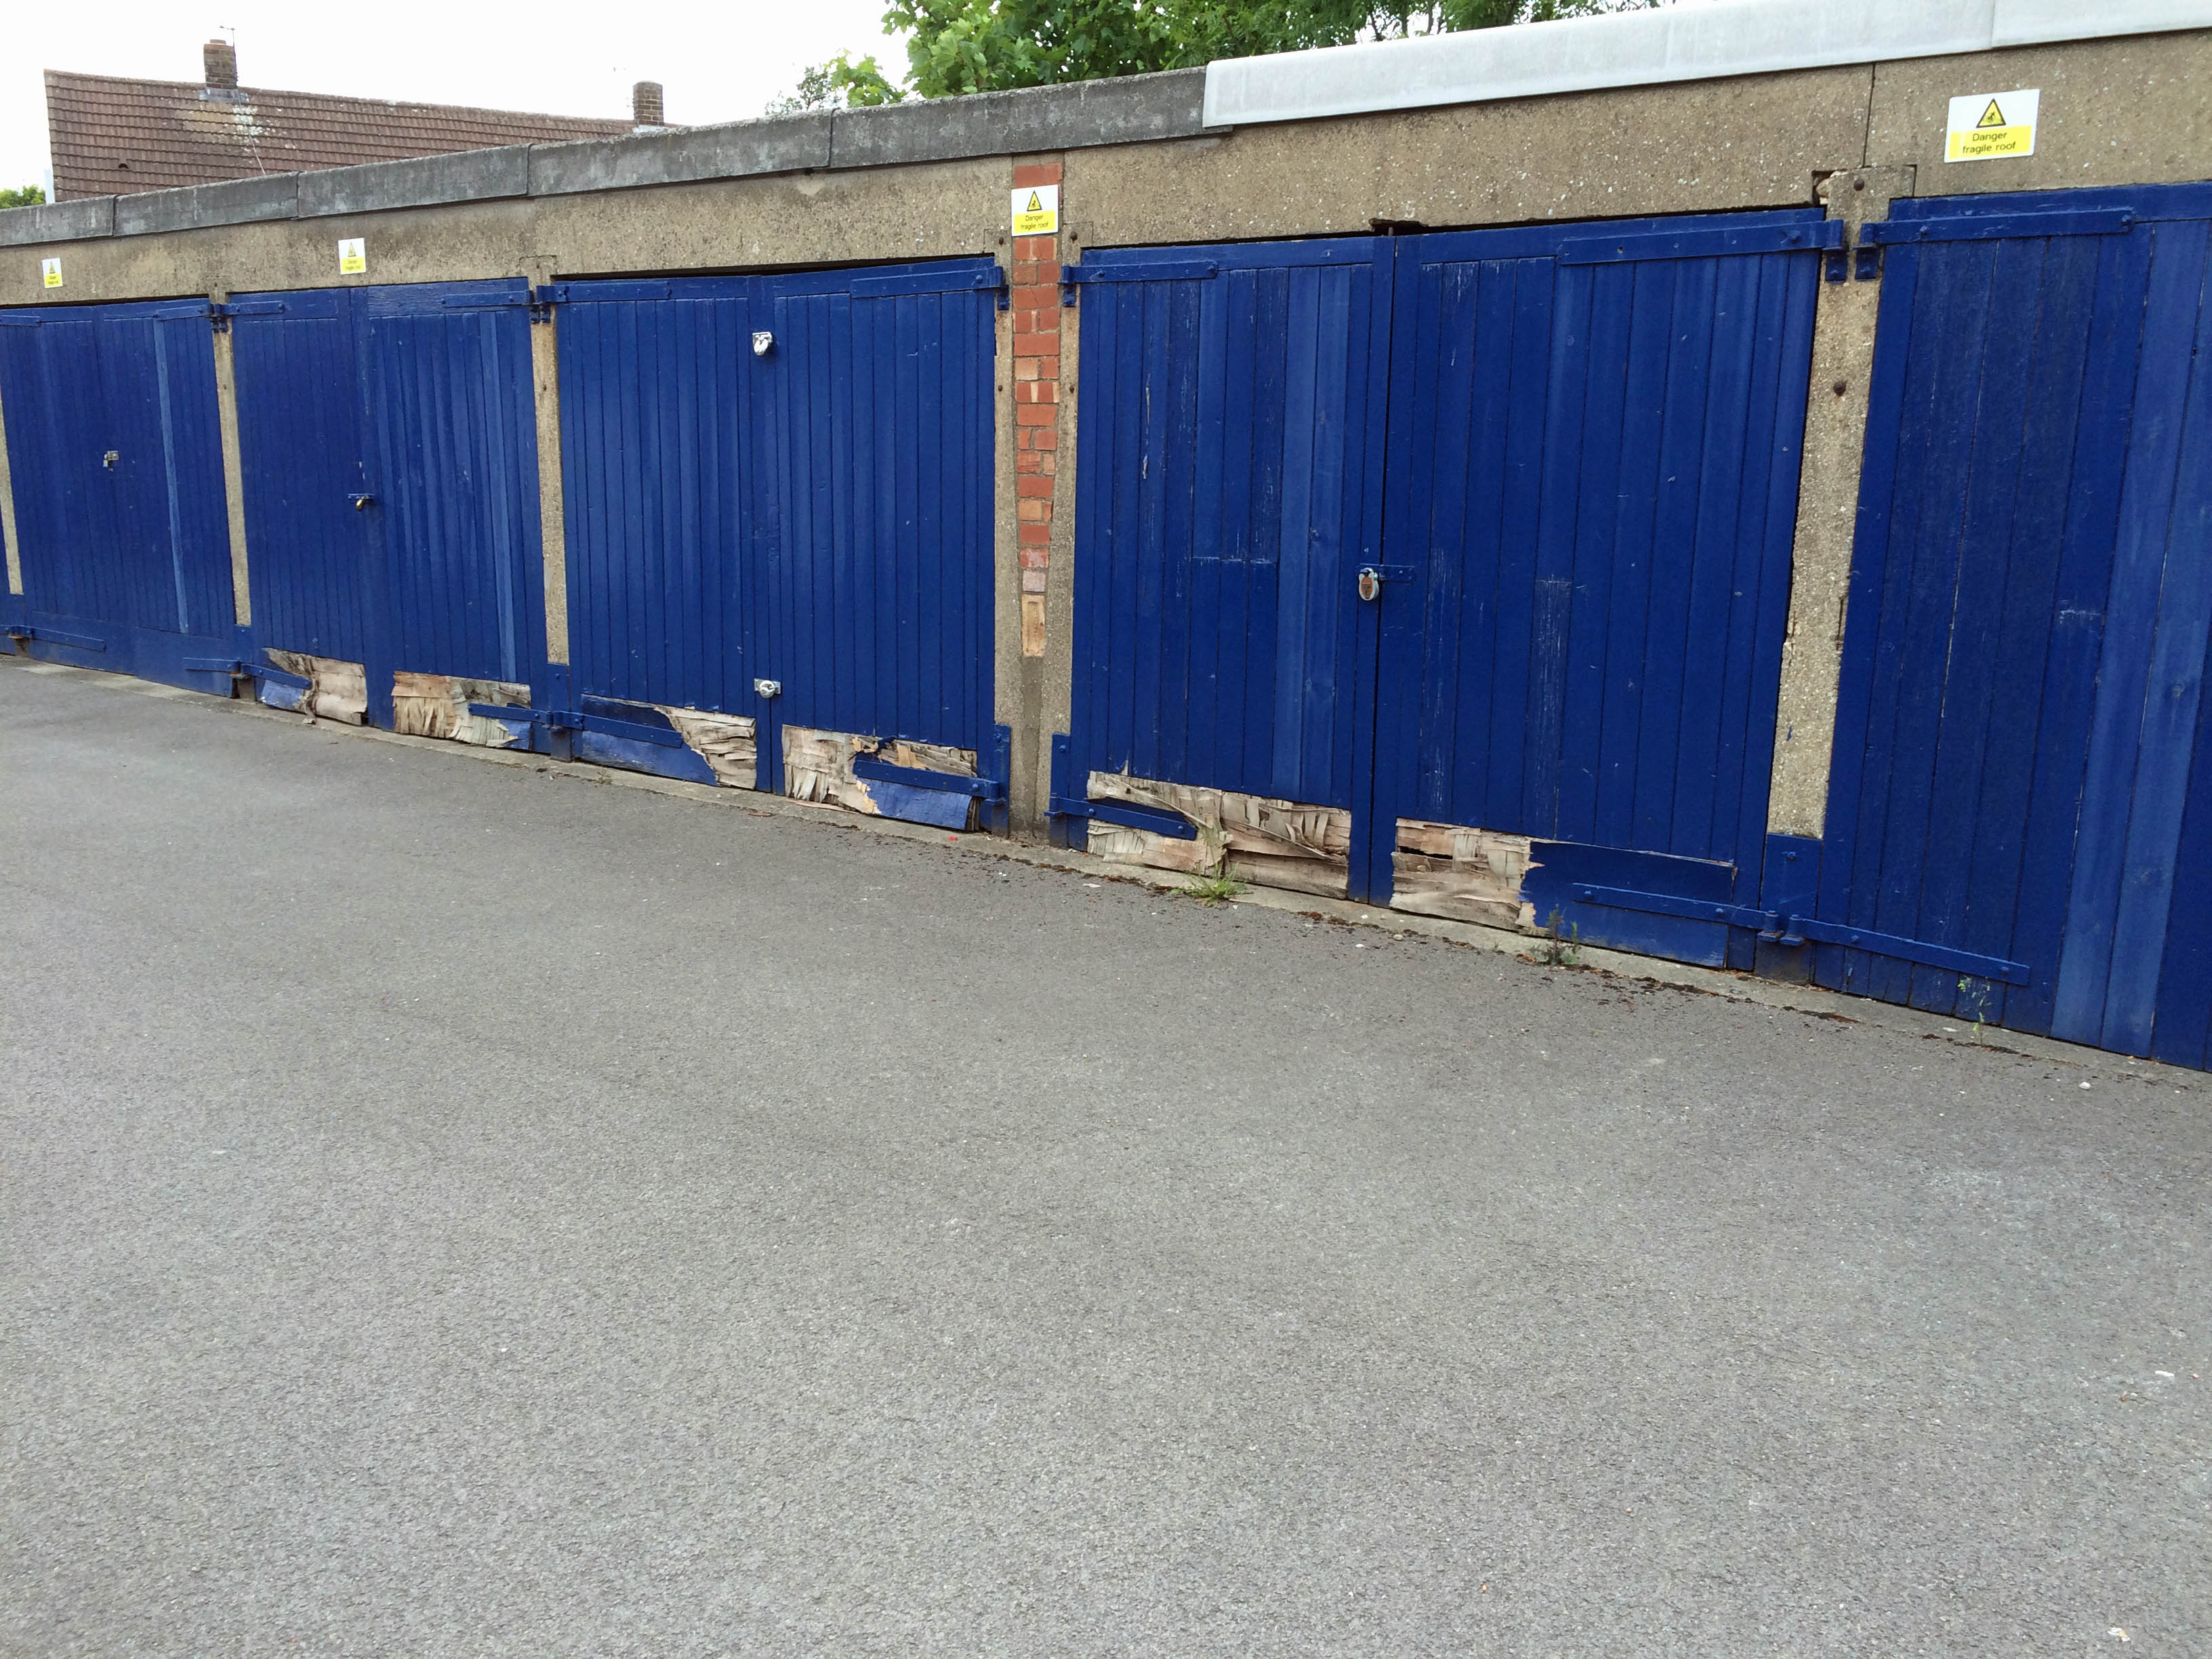 Poorly maintained garages on Chapelfields Road